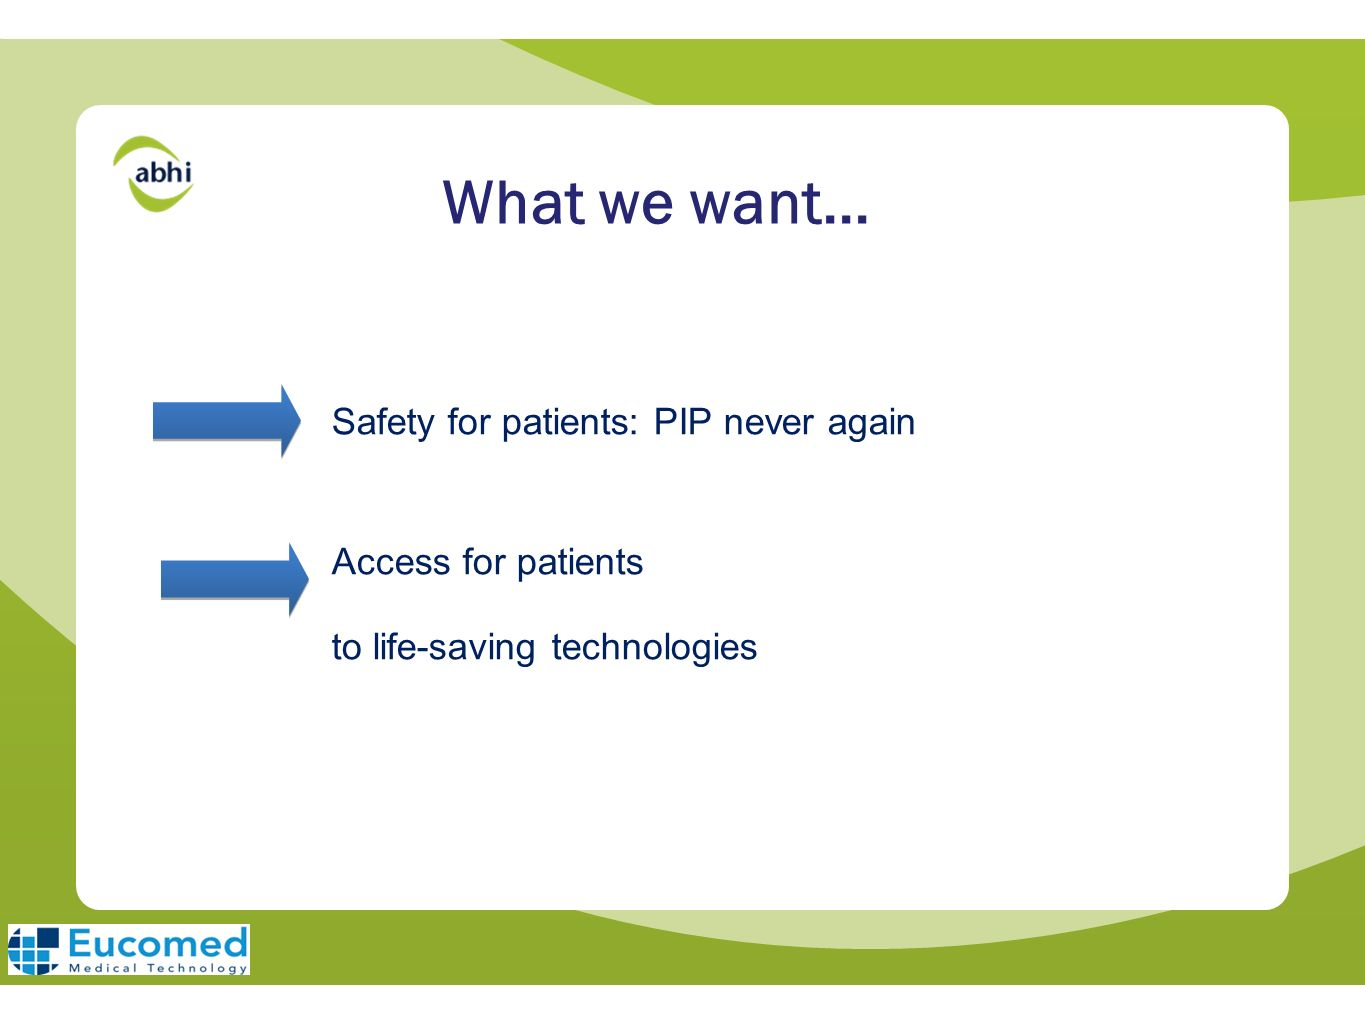 What we want... Access for patients to life-saving technologies